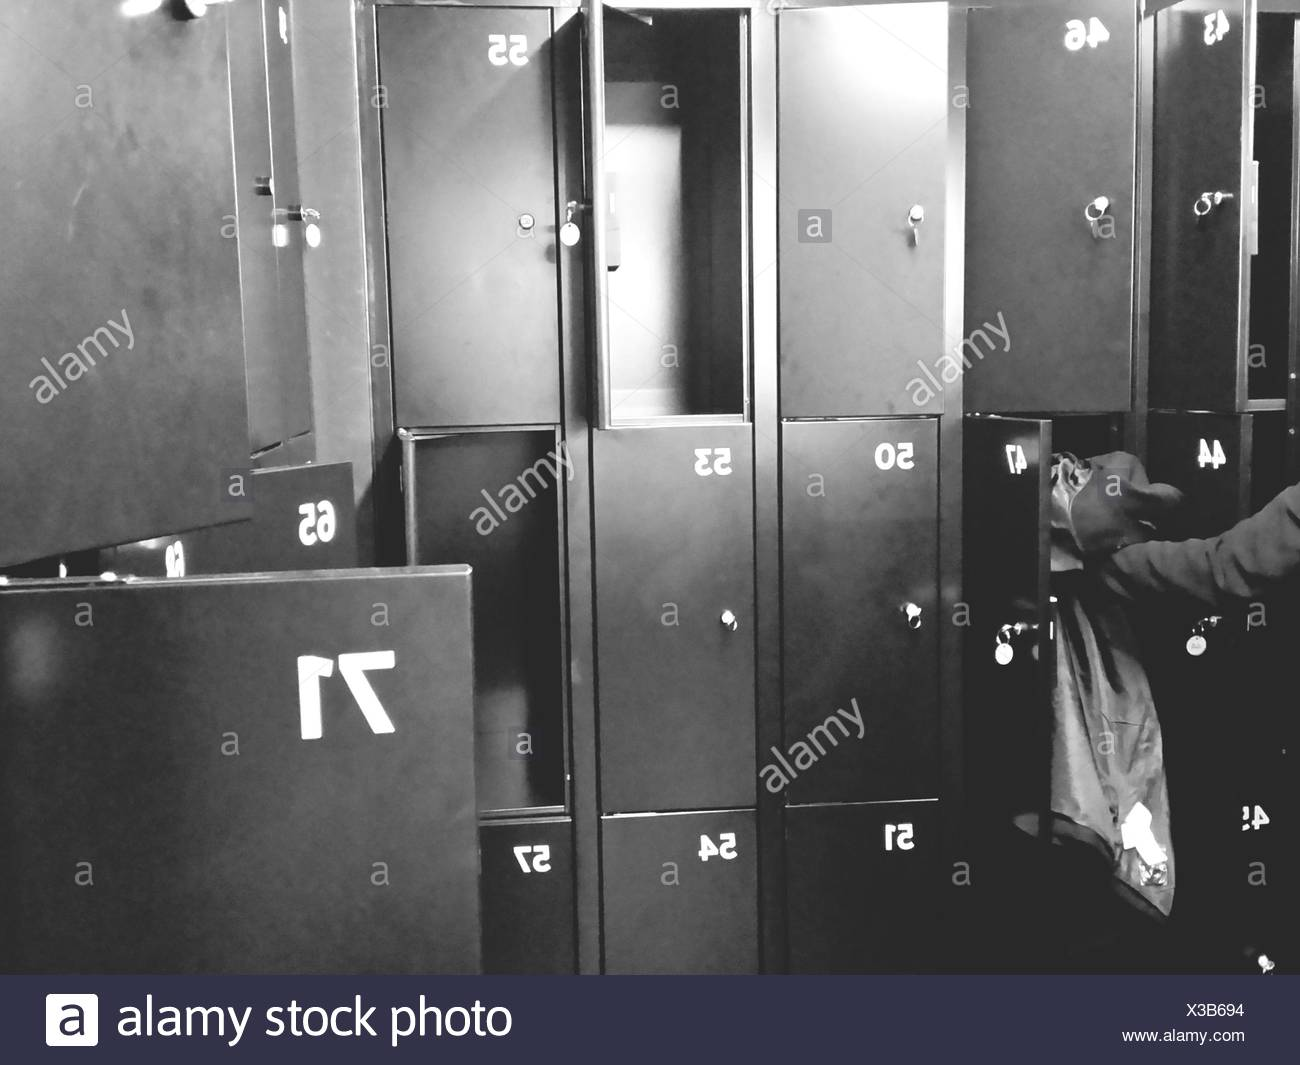 Close-Up Of Open Lockers - Stock Image